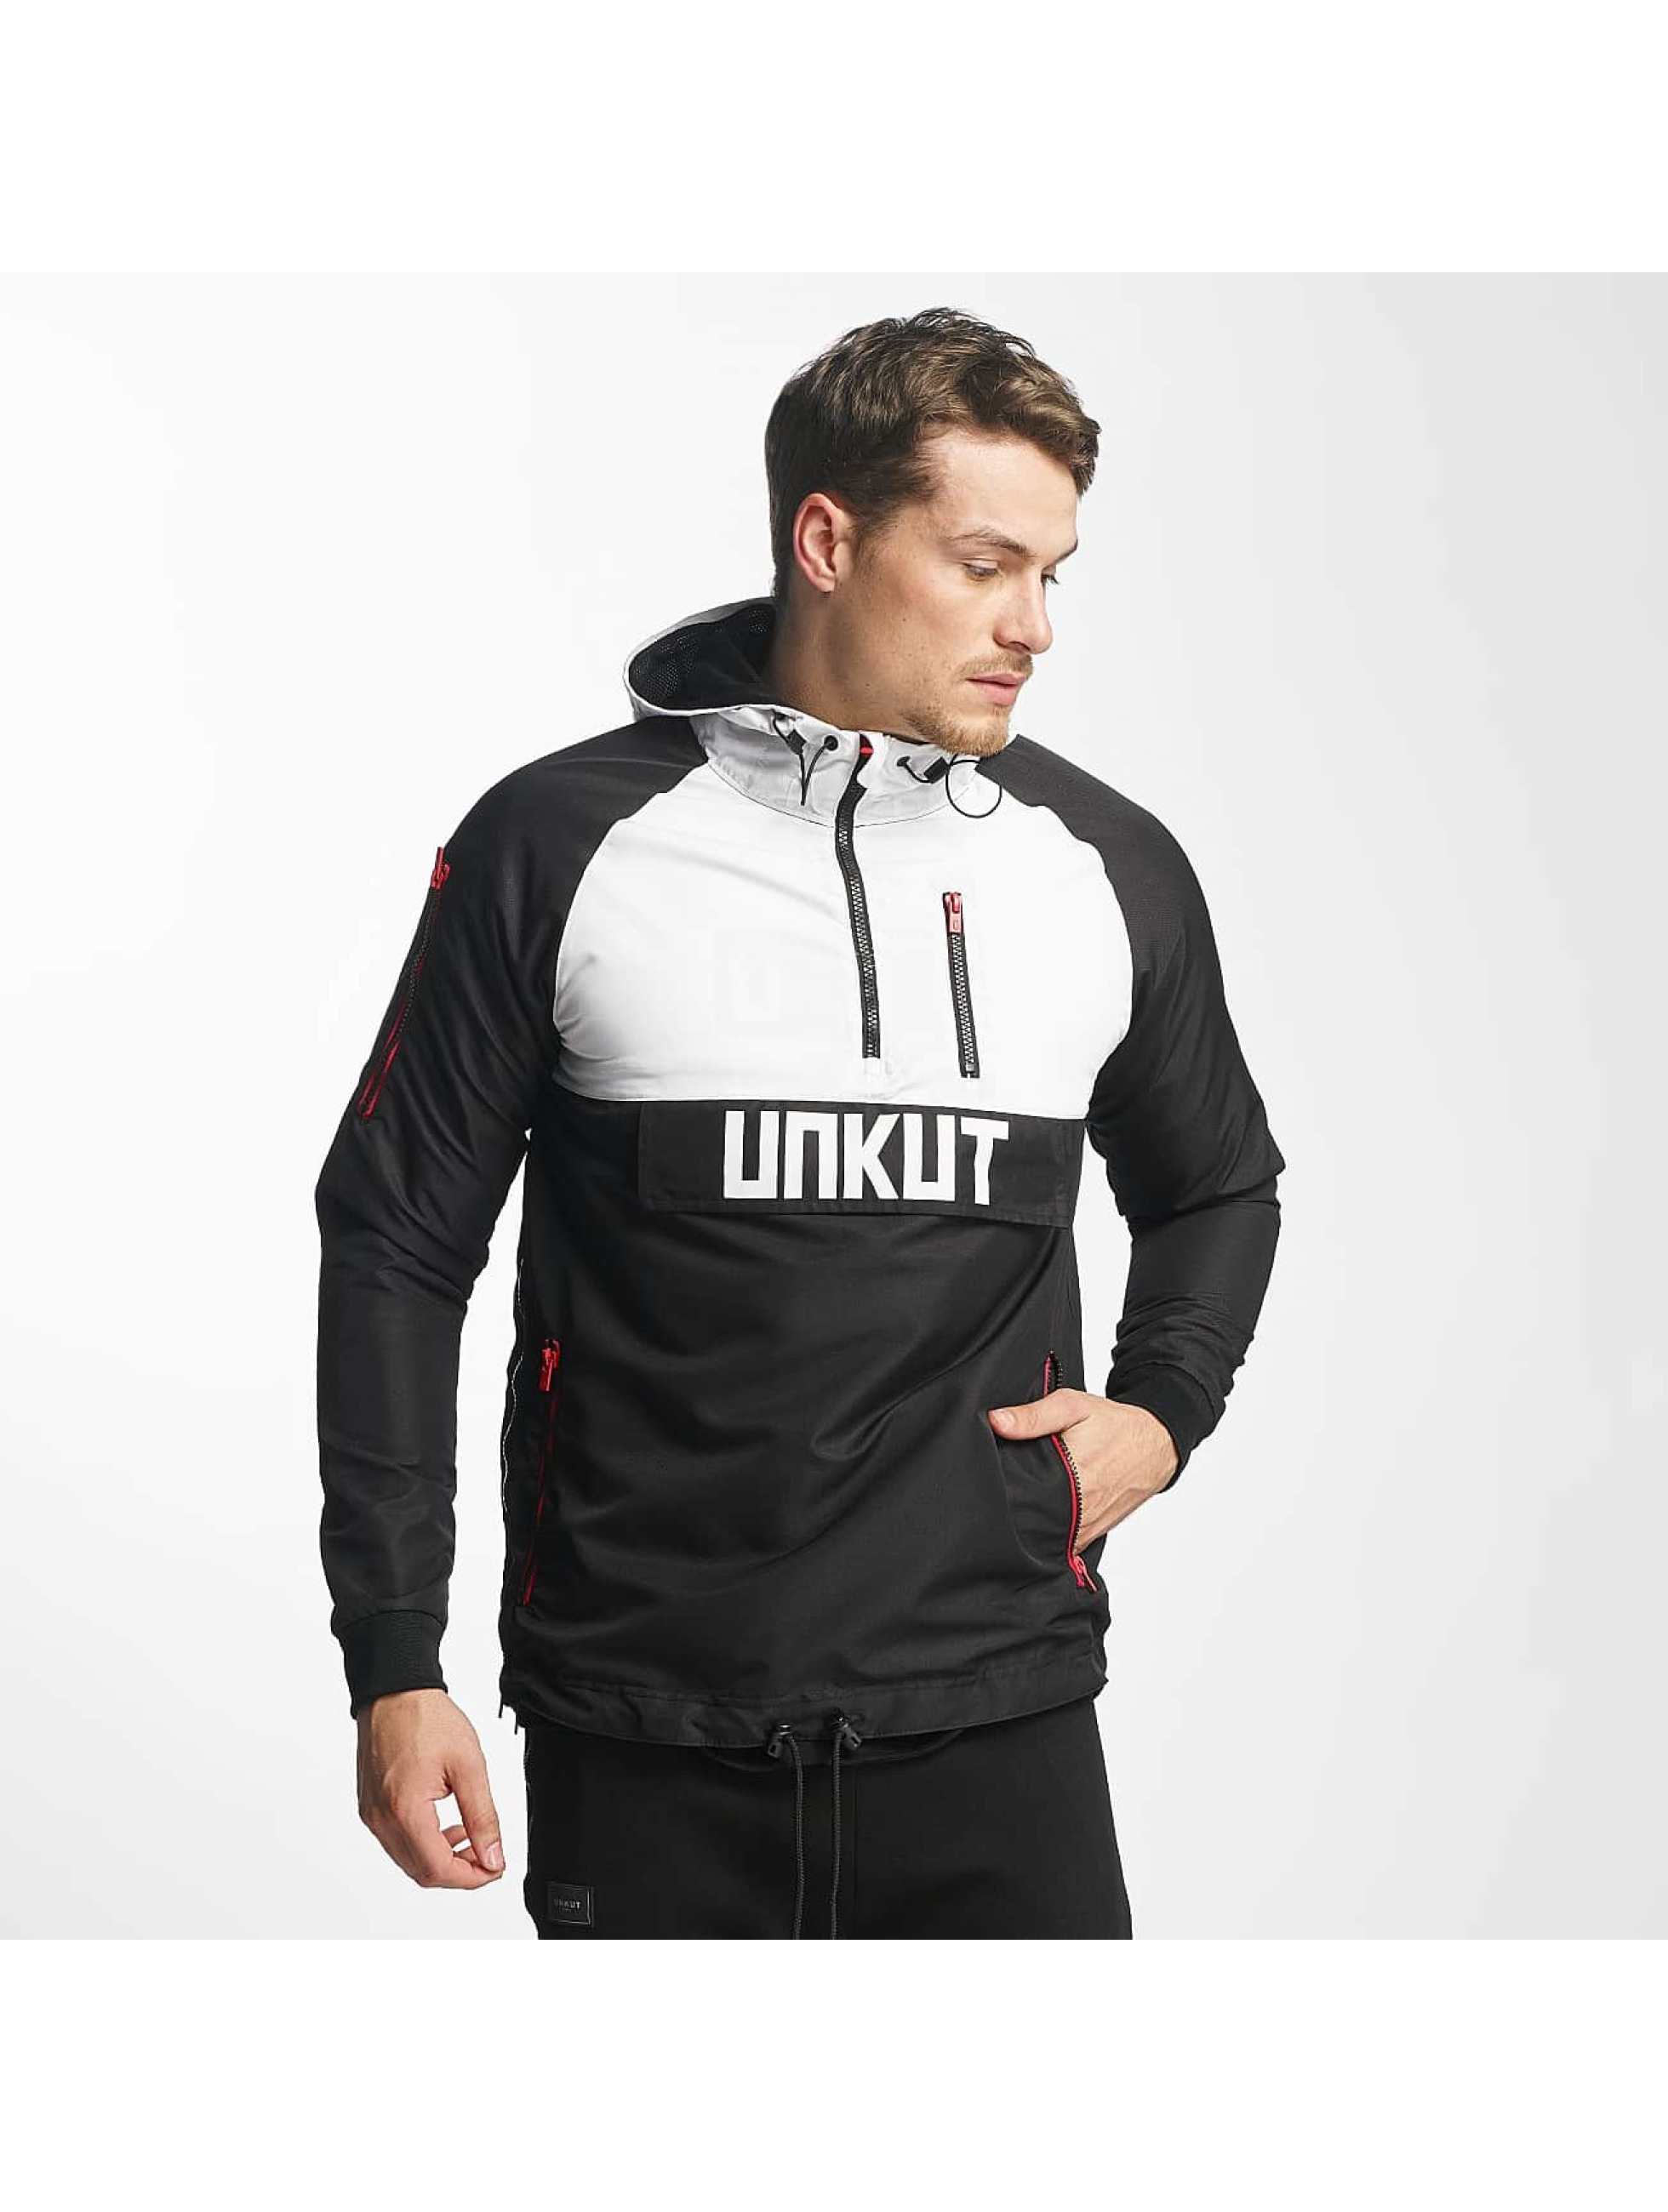 Unkut Lightweight Jacket Pilot black